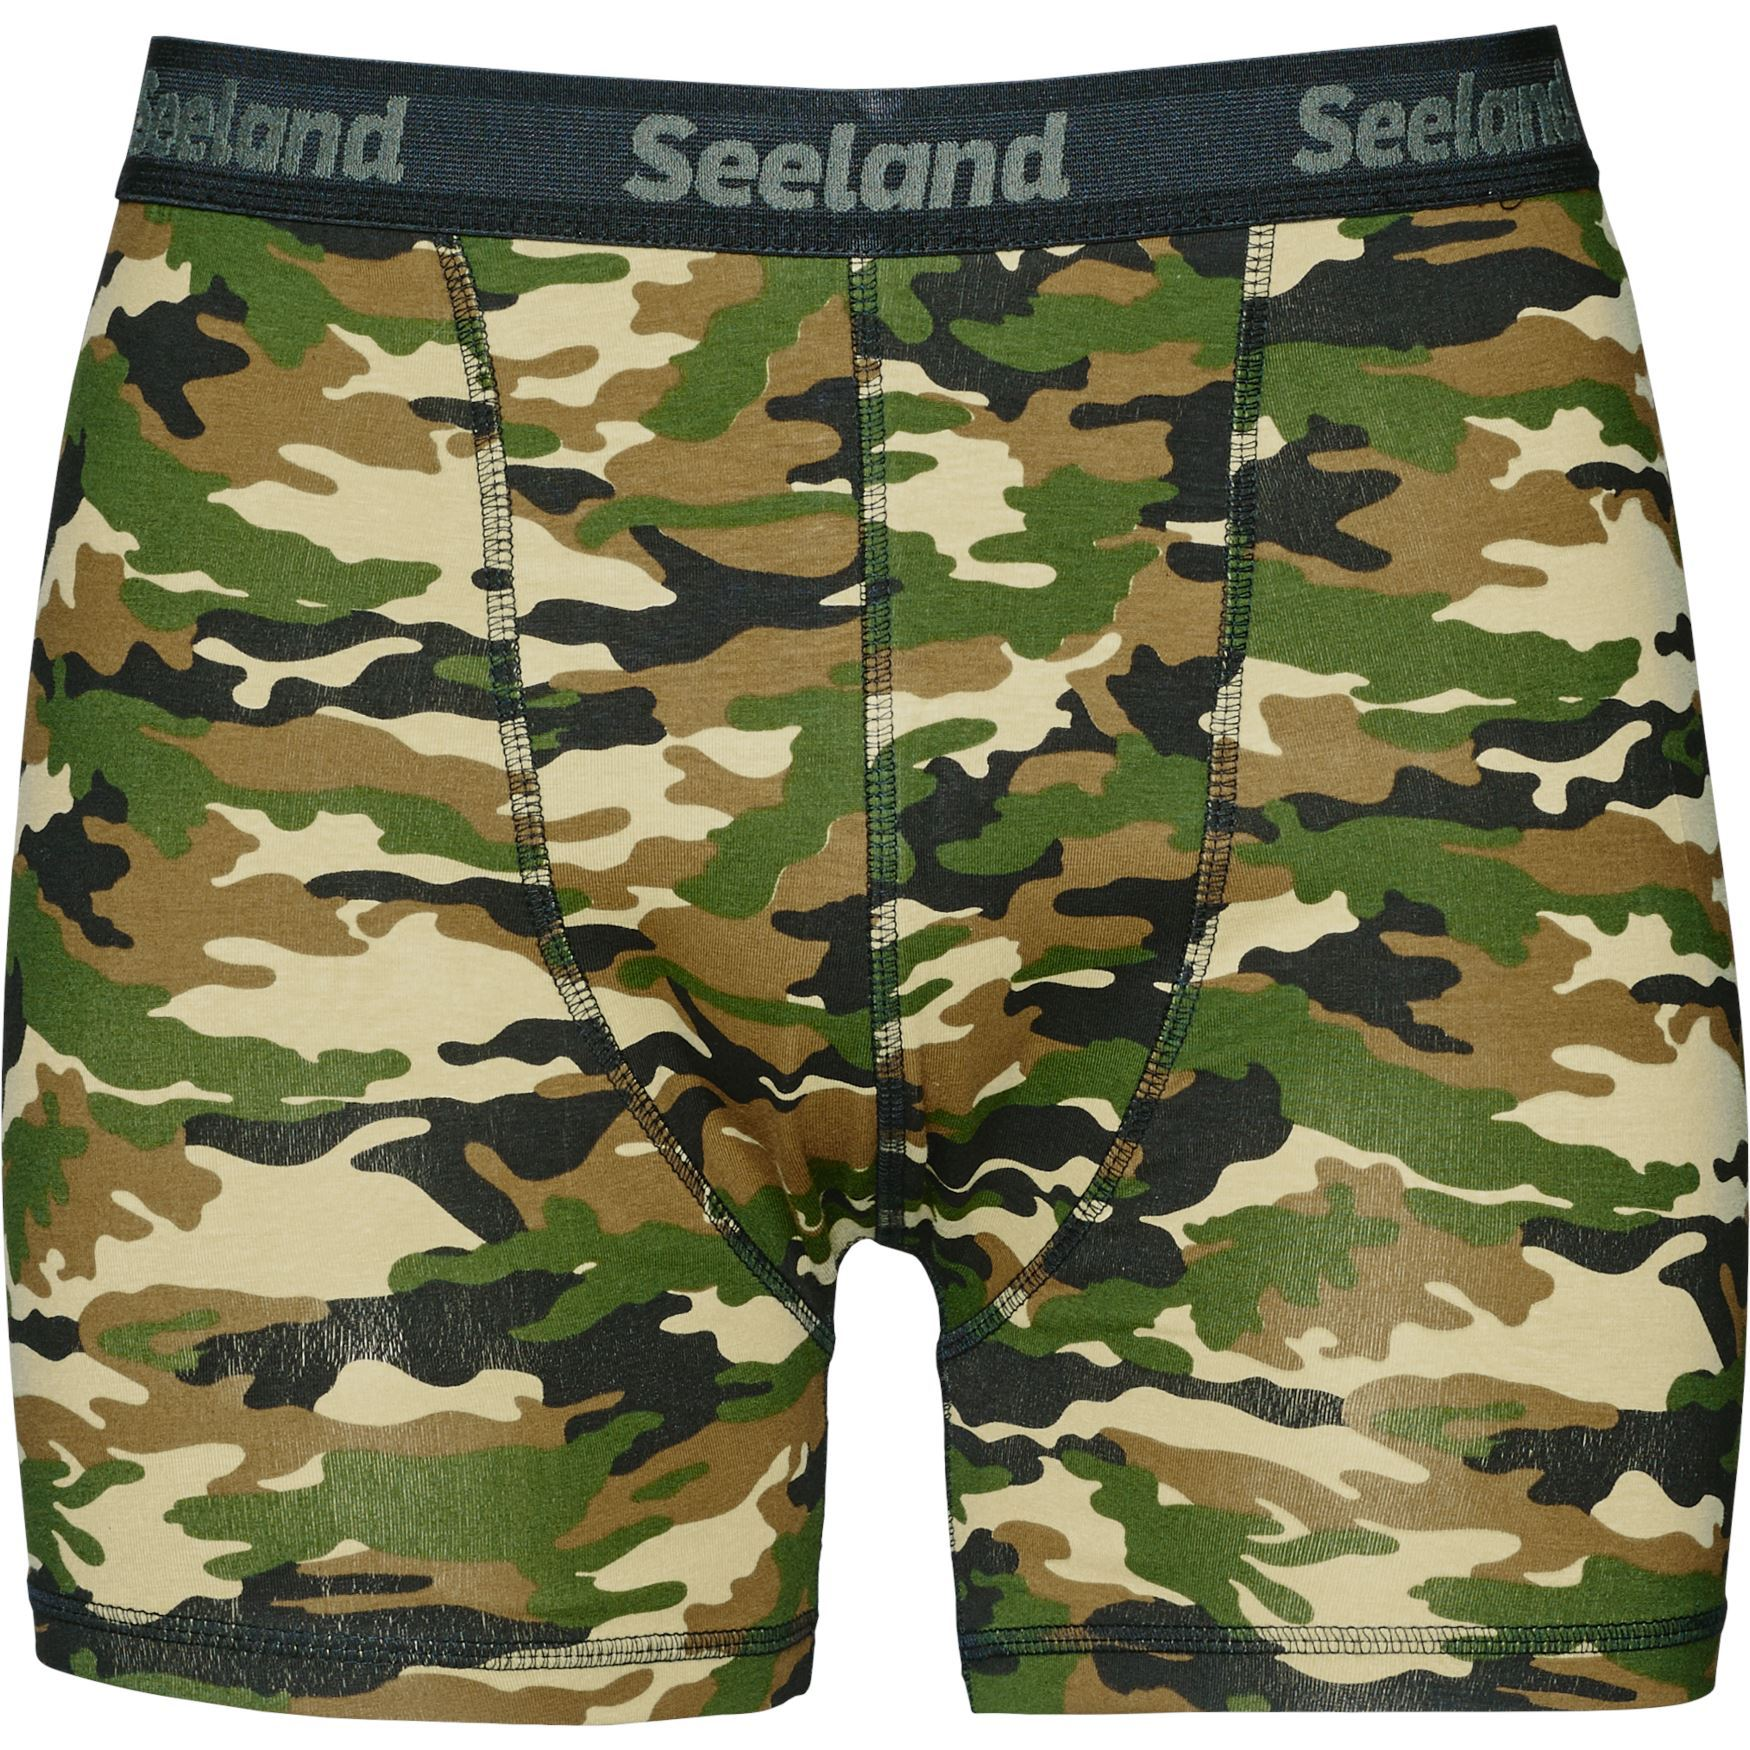 Seeland Seeland 2 pack boxer shorts Camo/Forest night - 3XL